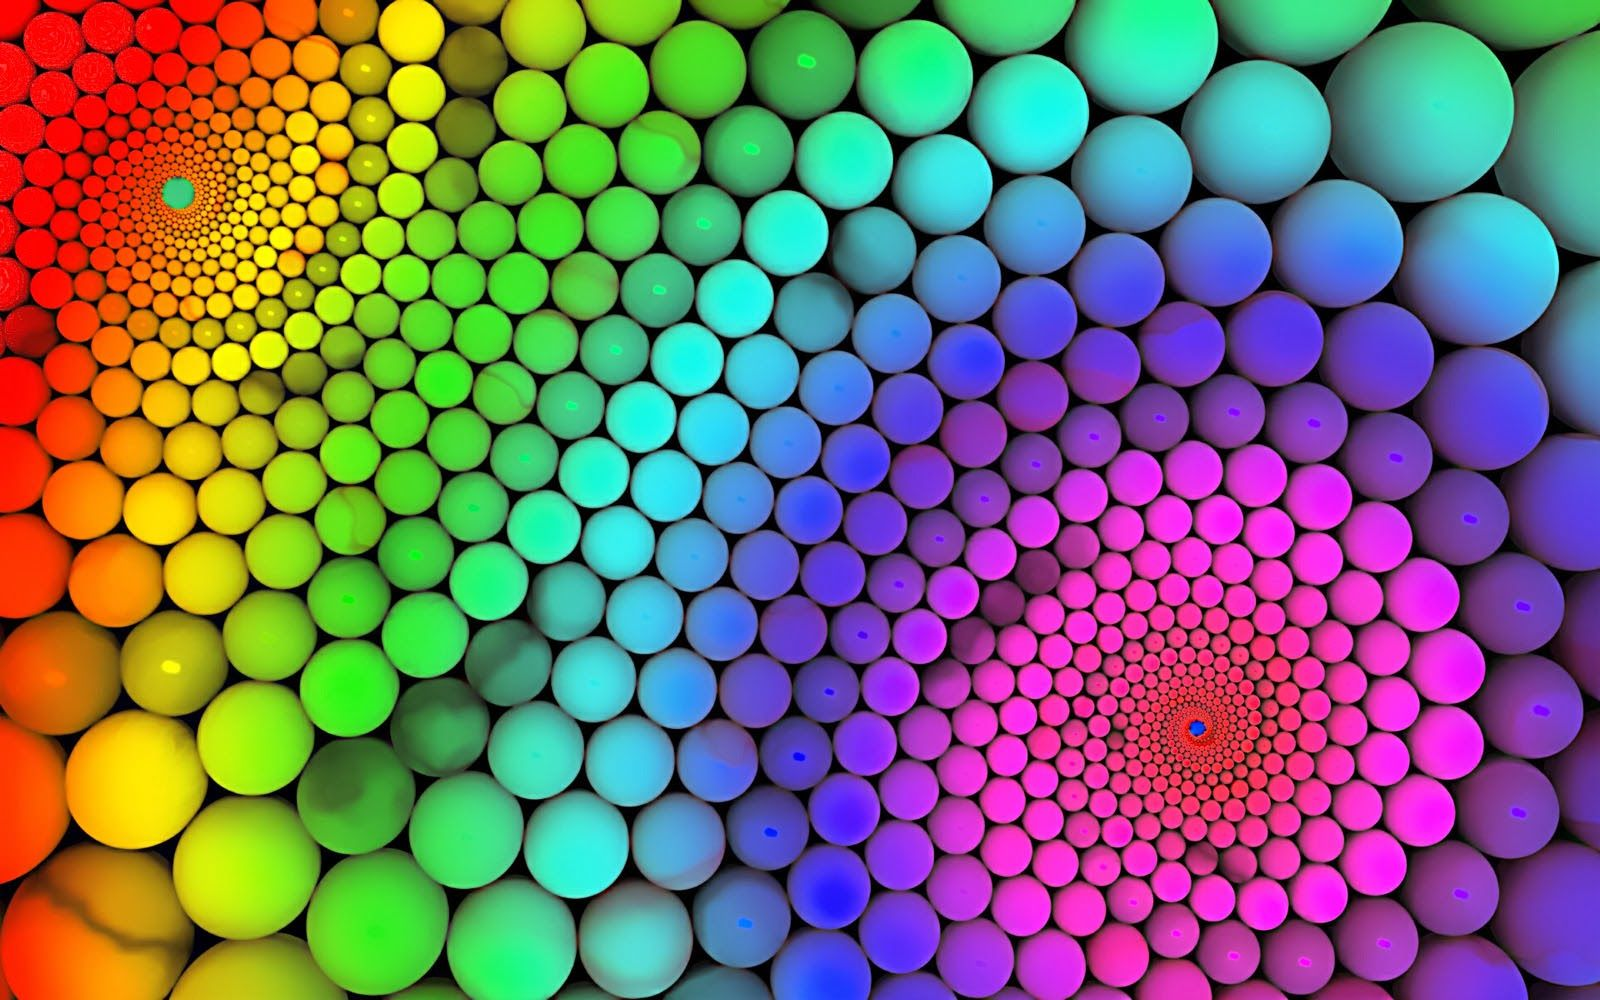 Cool Rainbow Computer Wallpapers